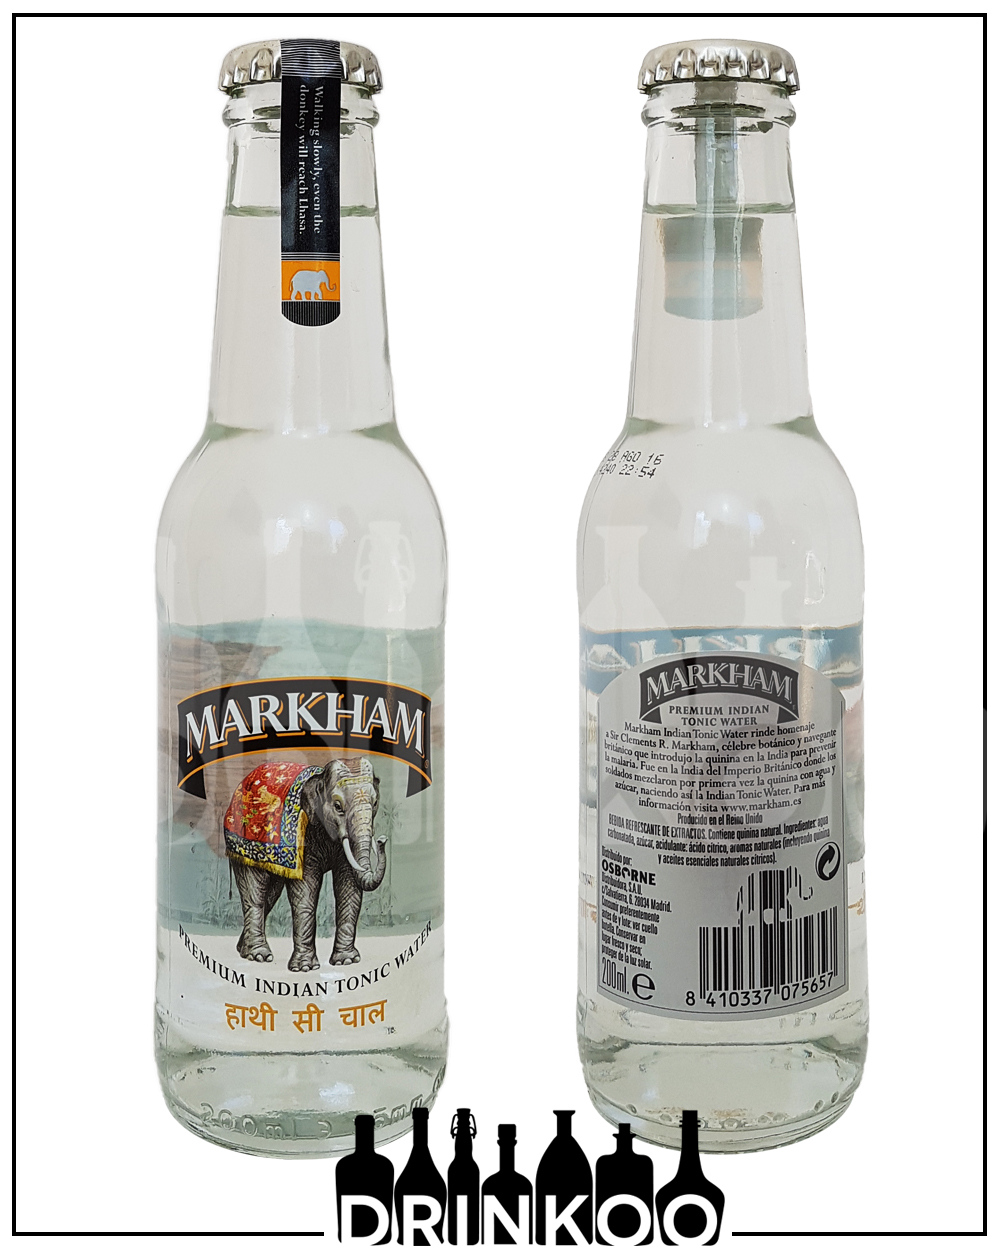 Markham Premium Indian Tonic Water